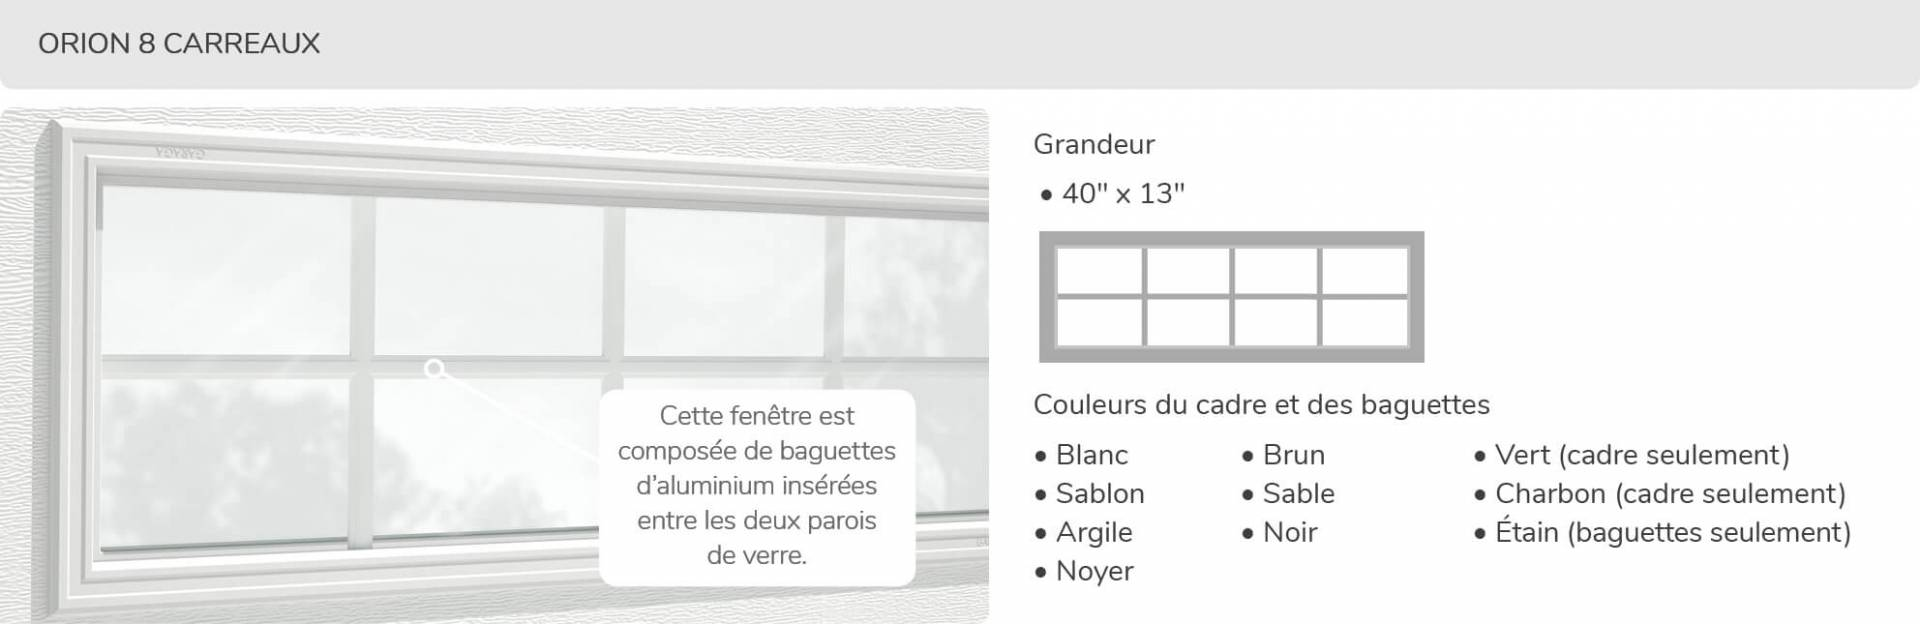 Orion 8 carreaux, 40' x 13', disponible pour la porte R-16